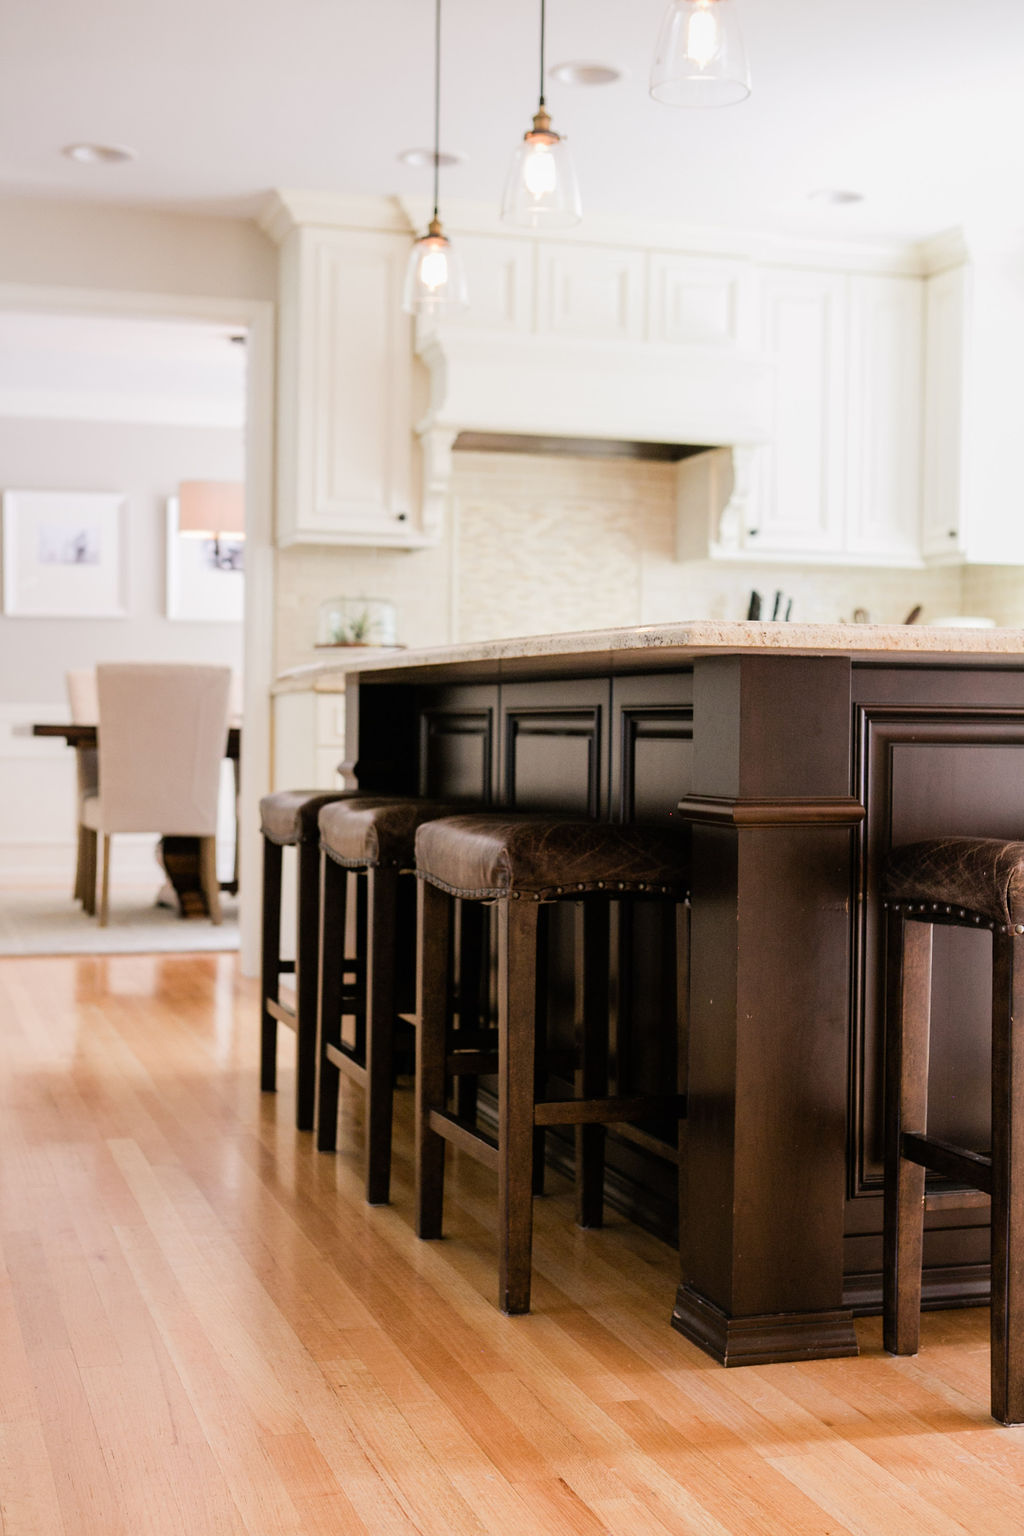 Stunning hardwood floors with leather barstools in a traditional kitchen with wolf appliances.